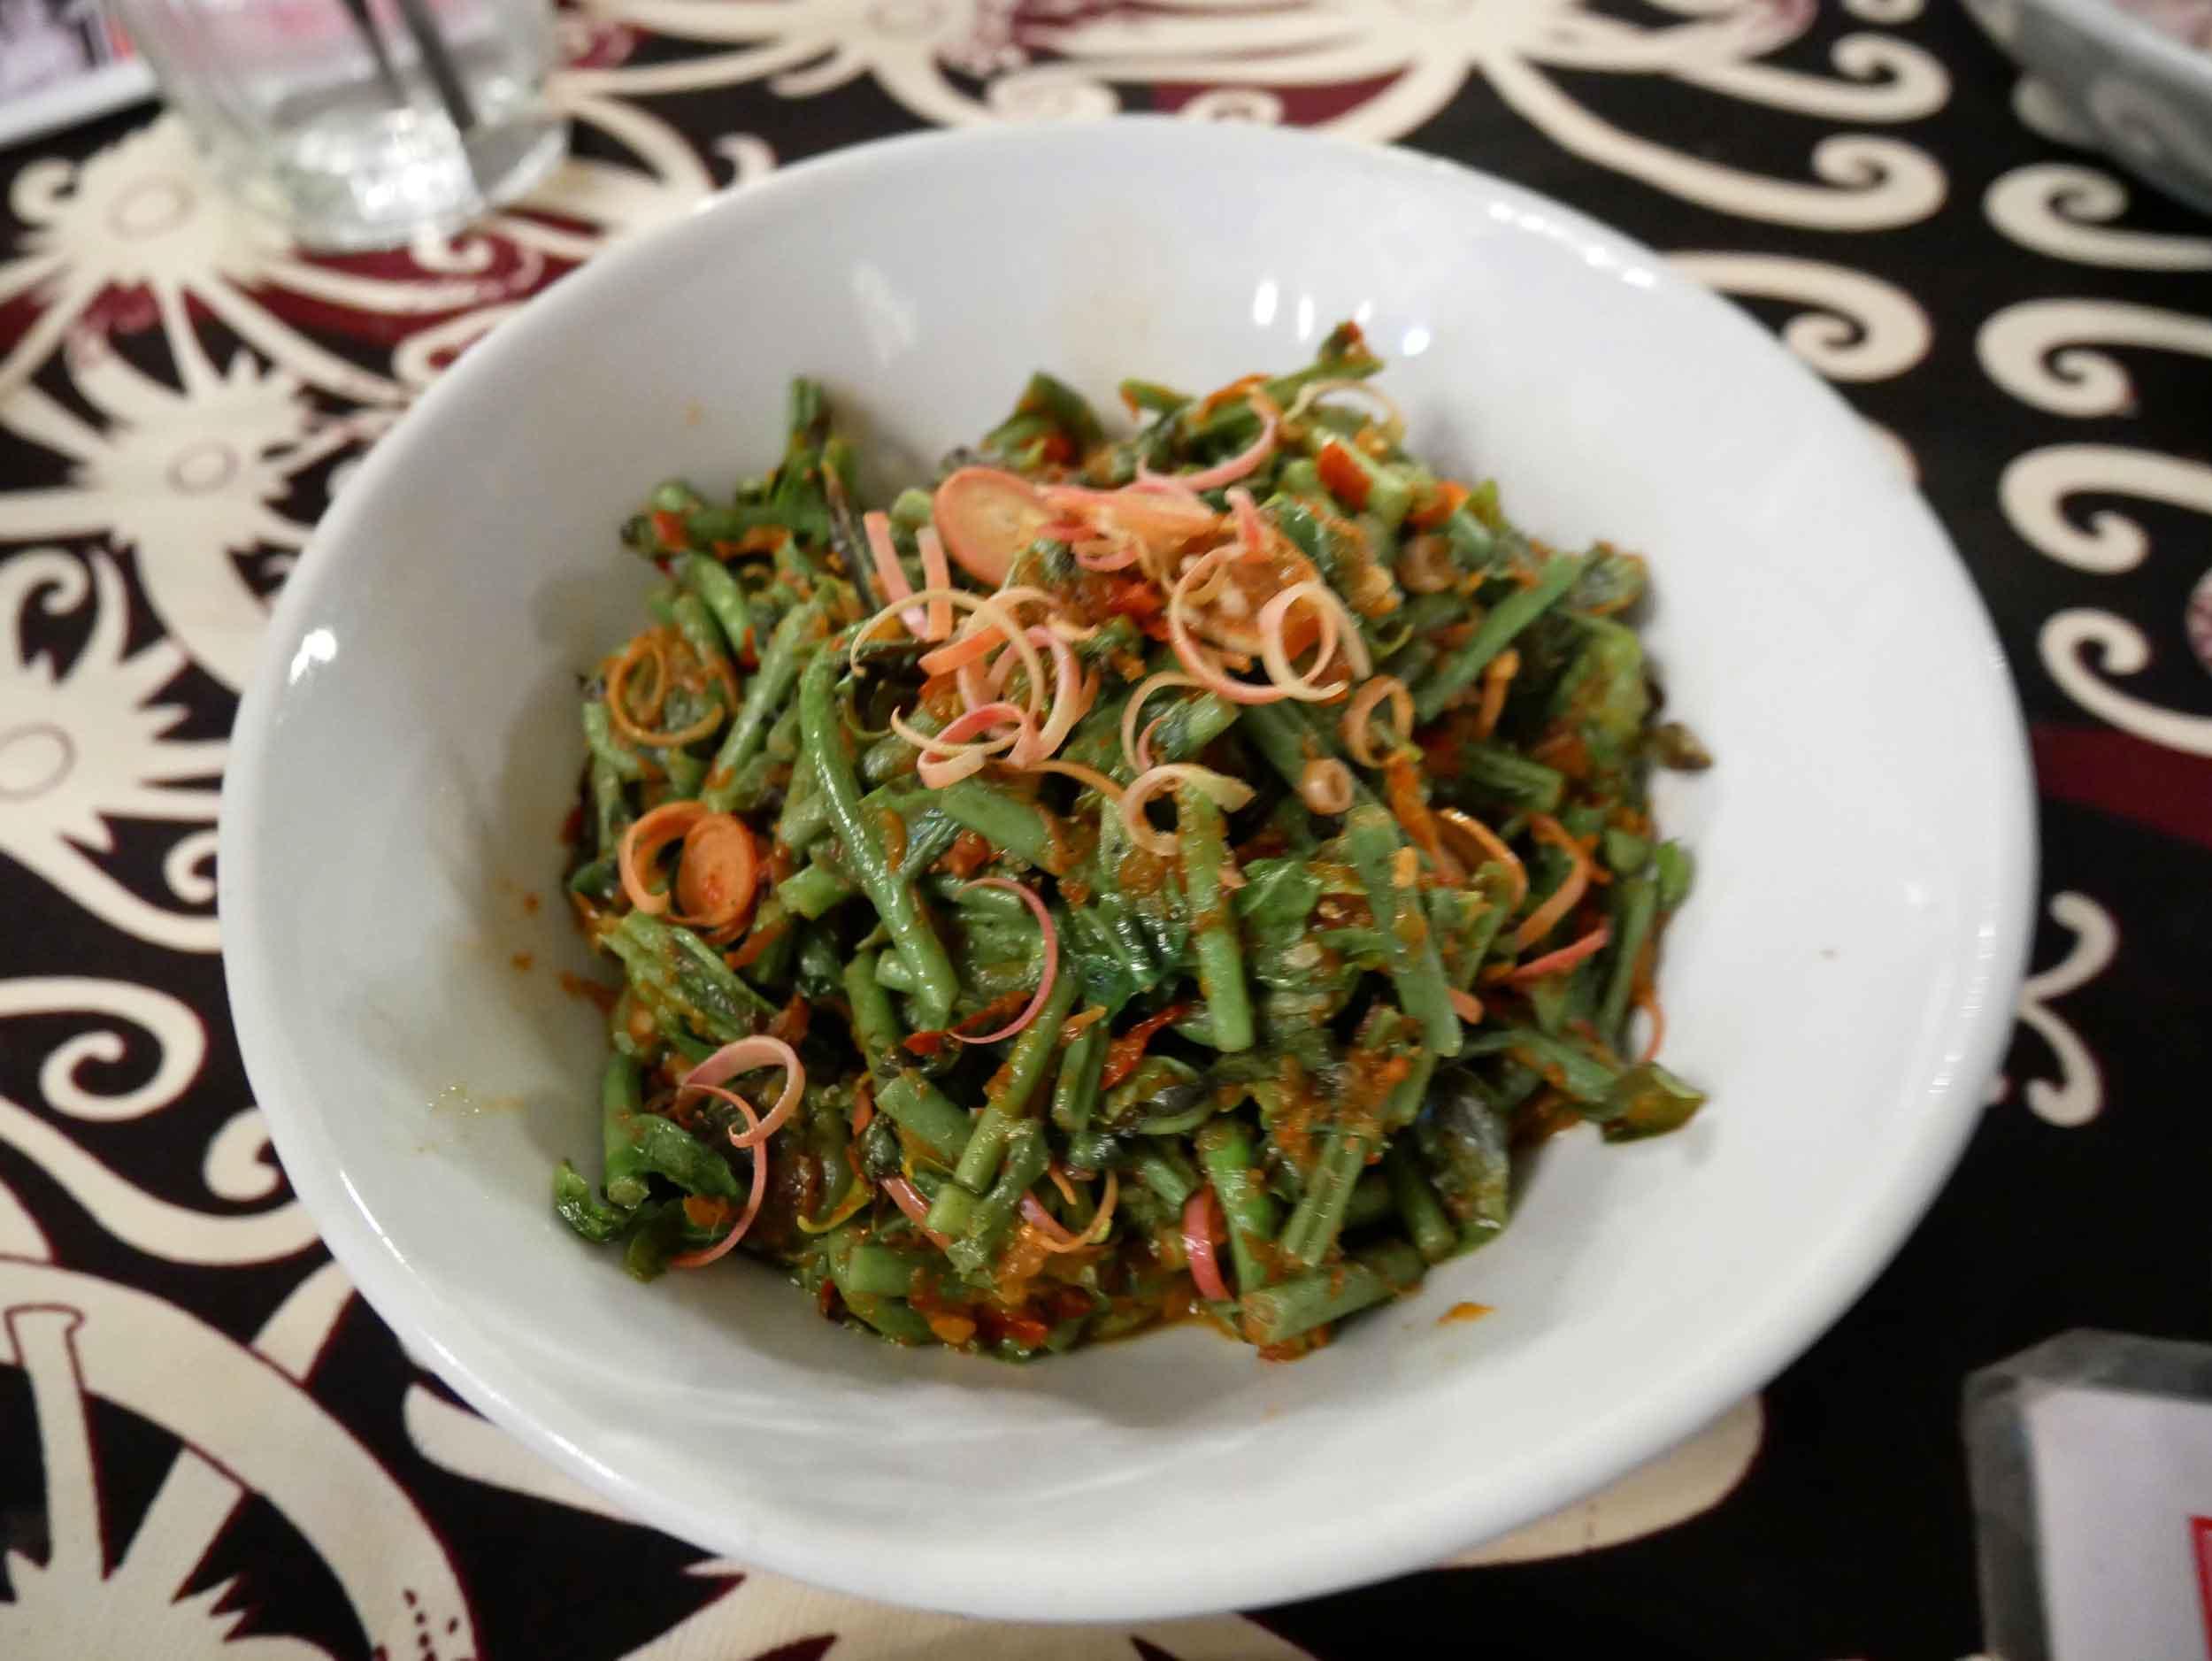 Spicy and bitter, the  stir fried fiddlehead ferns at The Dyak were a Malay take on the now trendy dish.